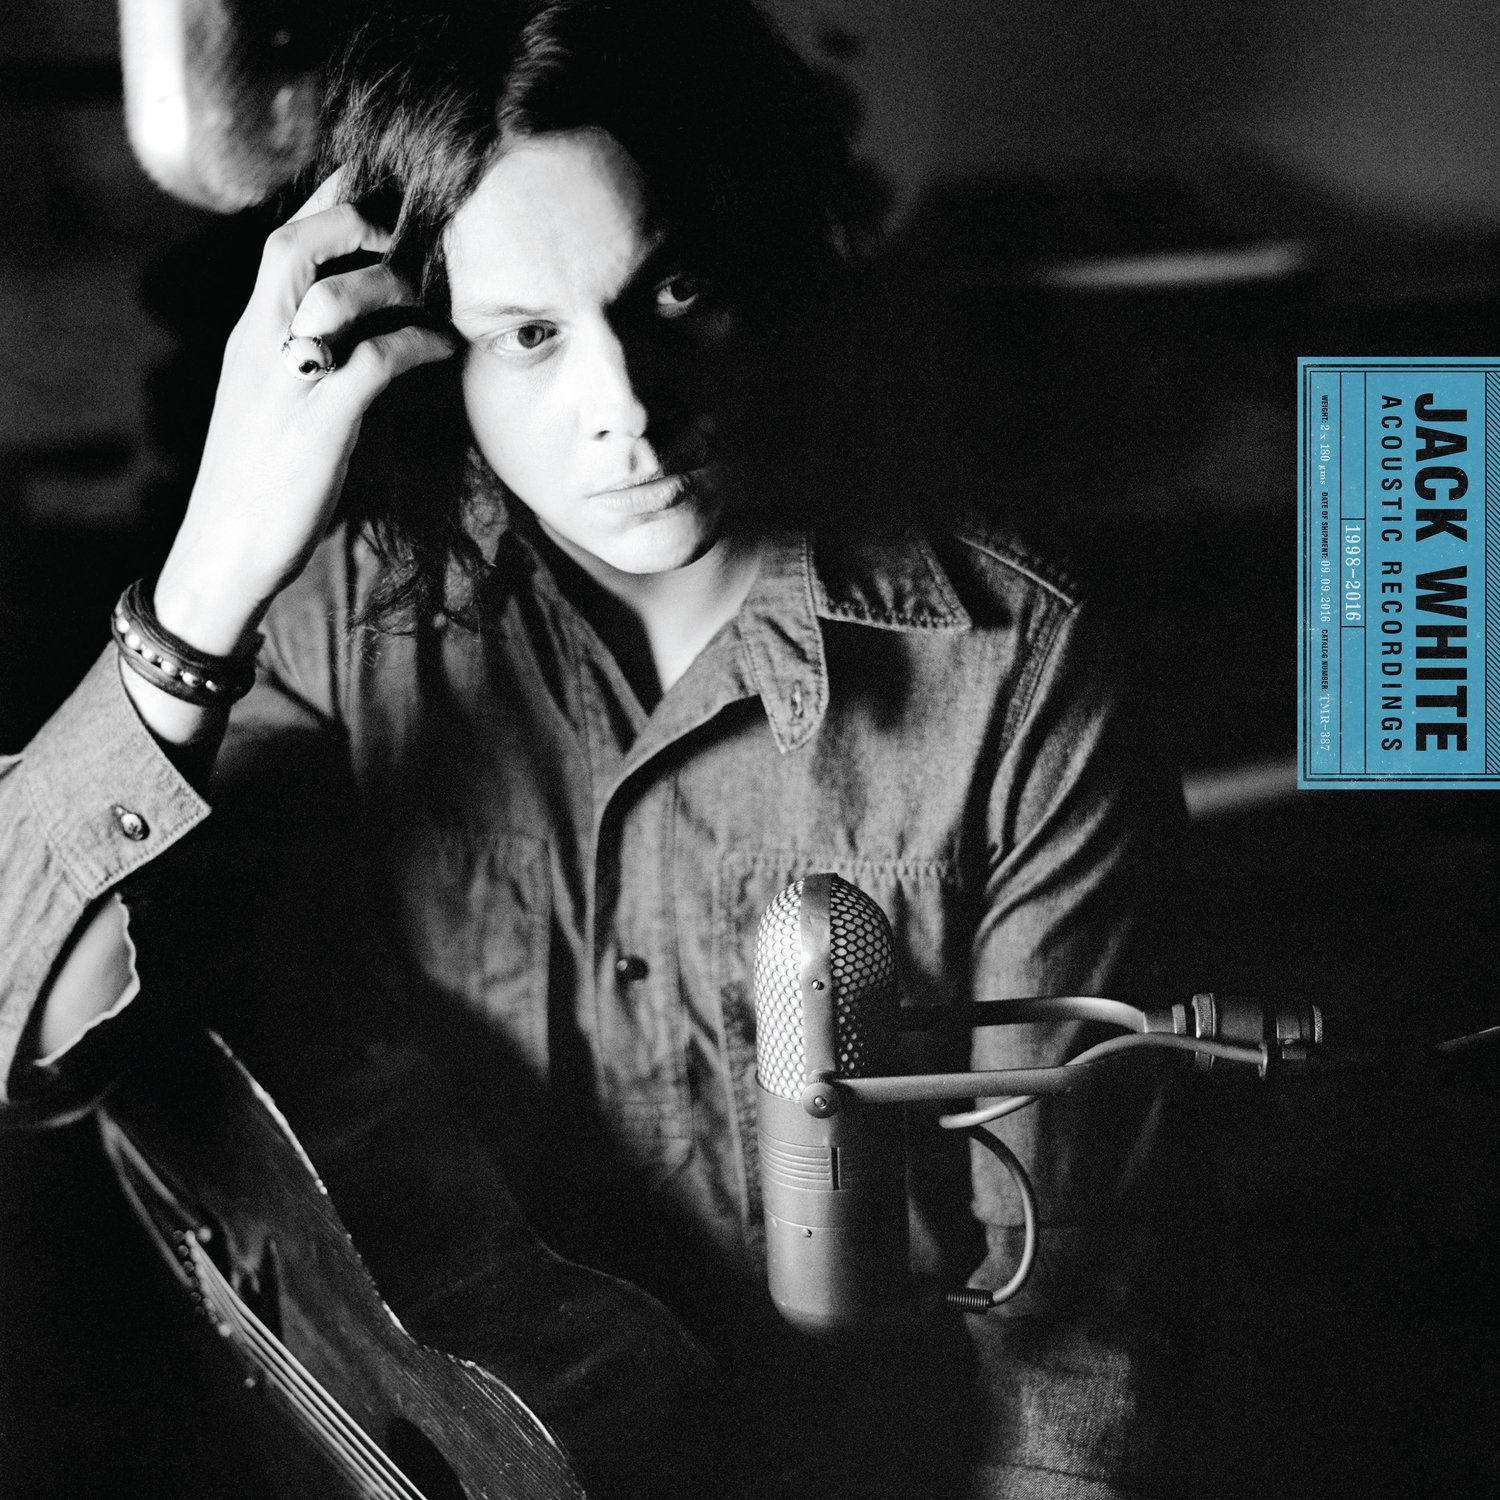 Jack White - Acoustic Recording 1998-2016